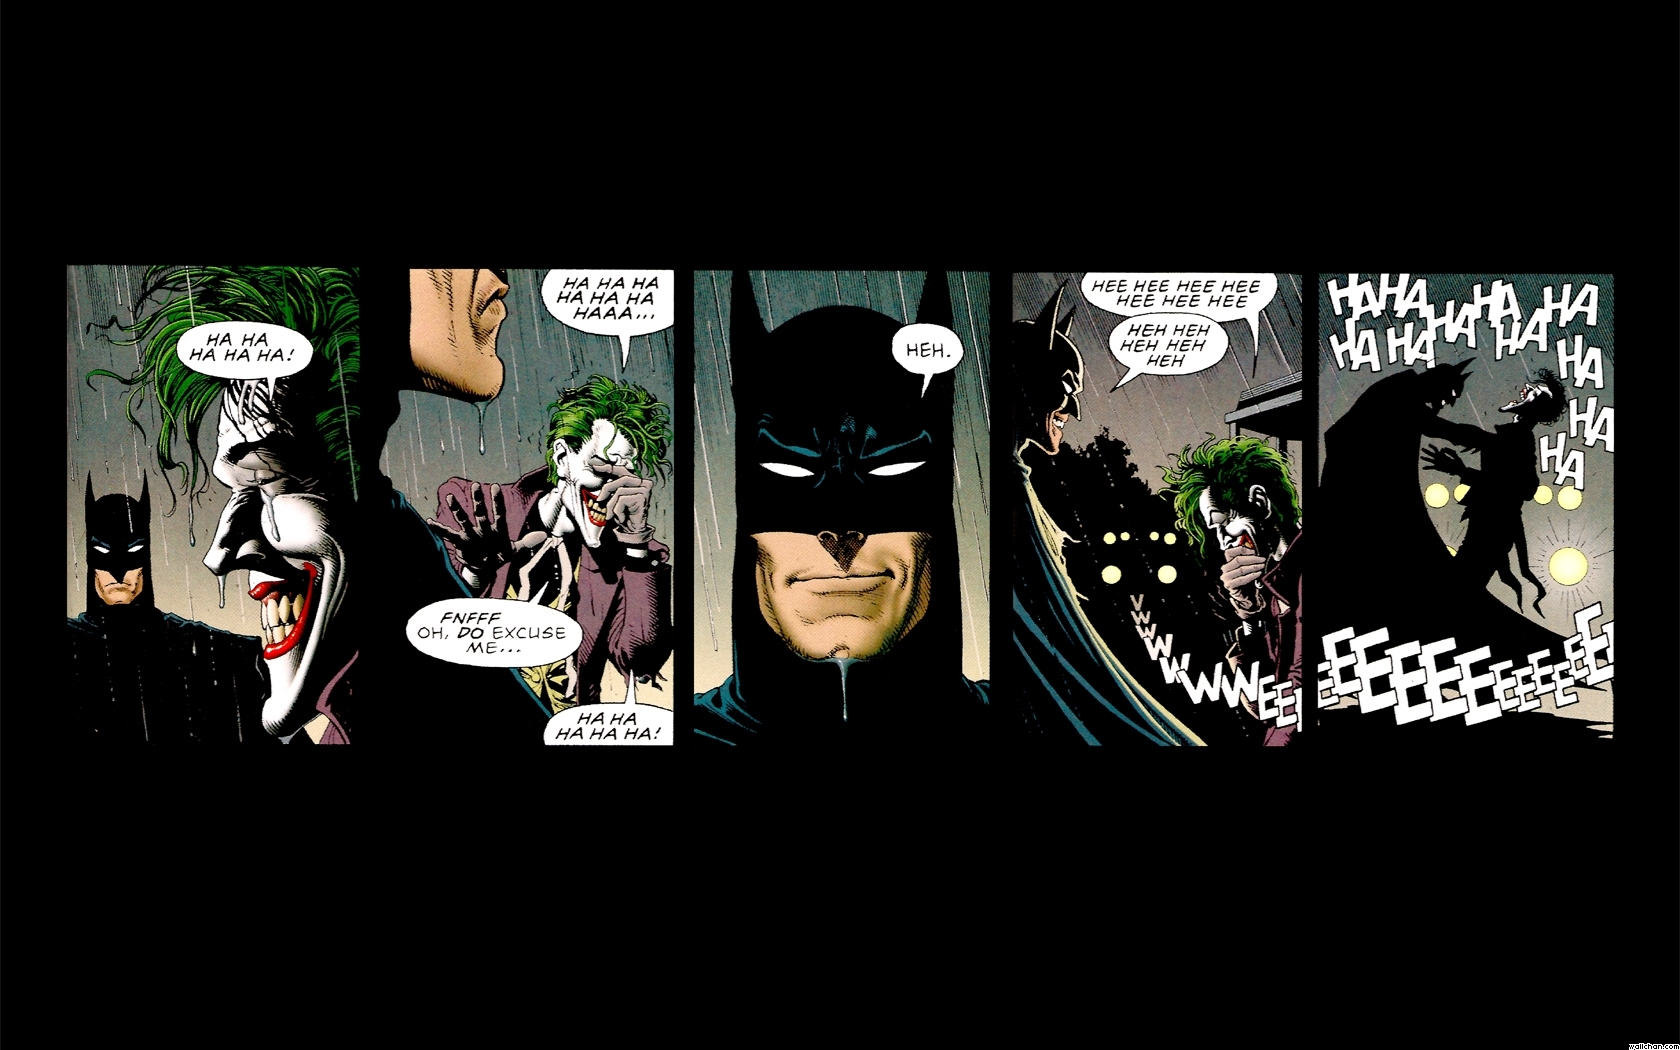 Batman The Killing Joke Hardcover Deluxe Edition Review The 1680x1050